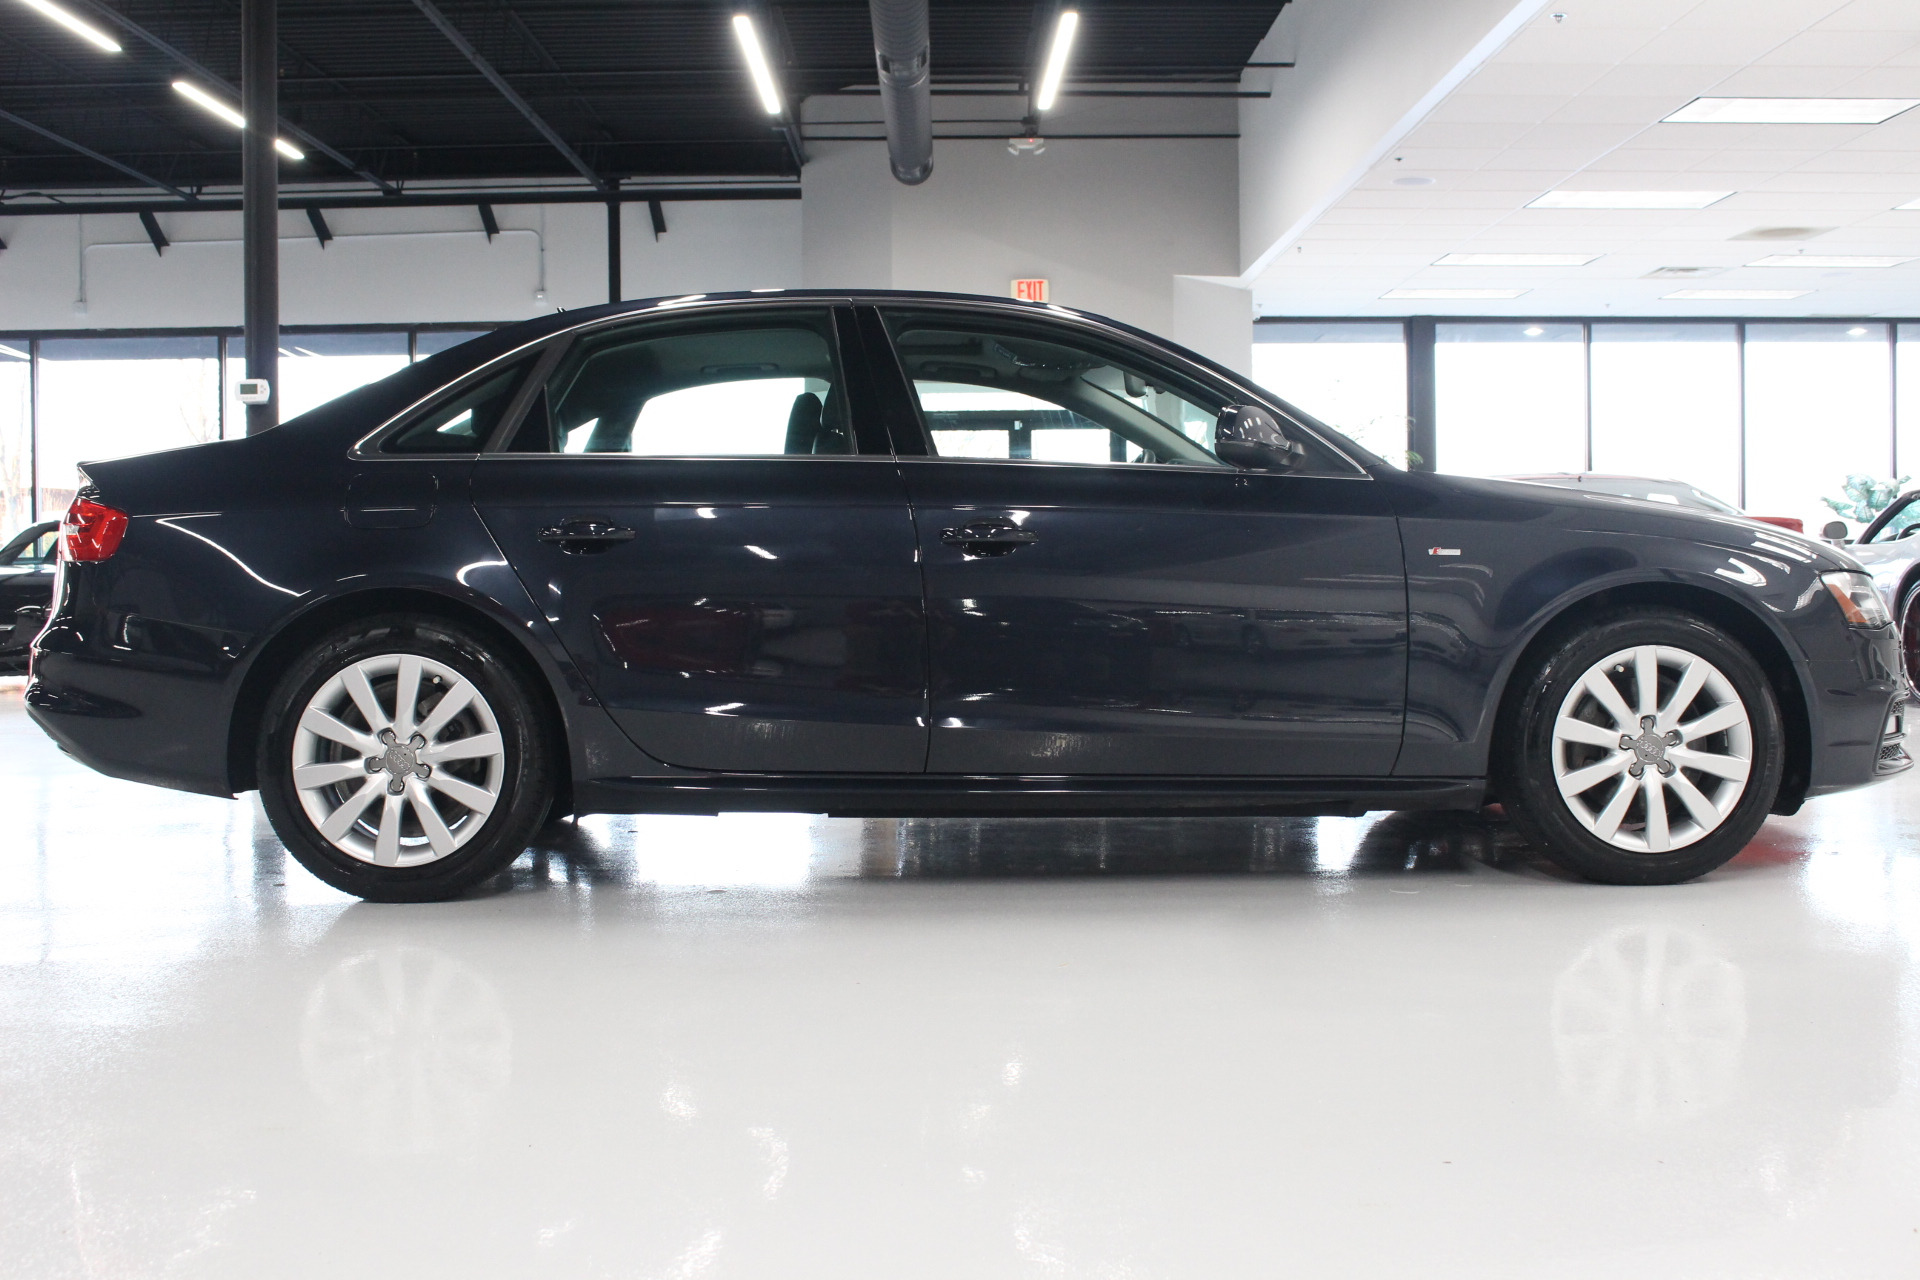 Audi Dealership Near Me >> 2015 Audi A4 4dr Sedan Manual quattro 2.0T Premium Stock # 017891 for sale near Lisle, IL | IL ...